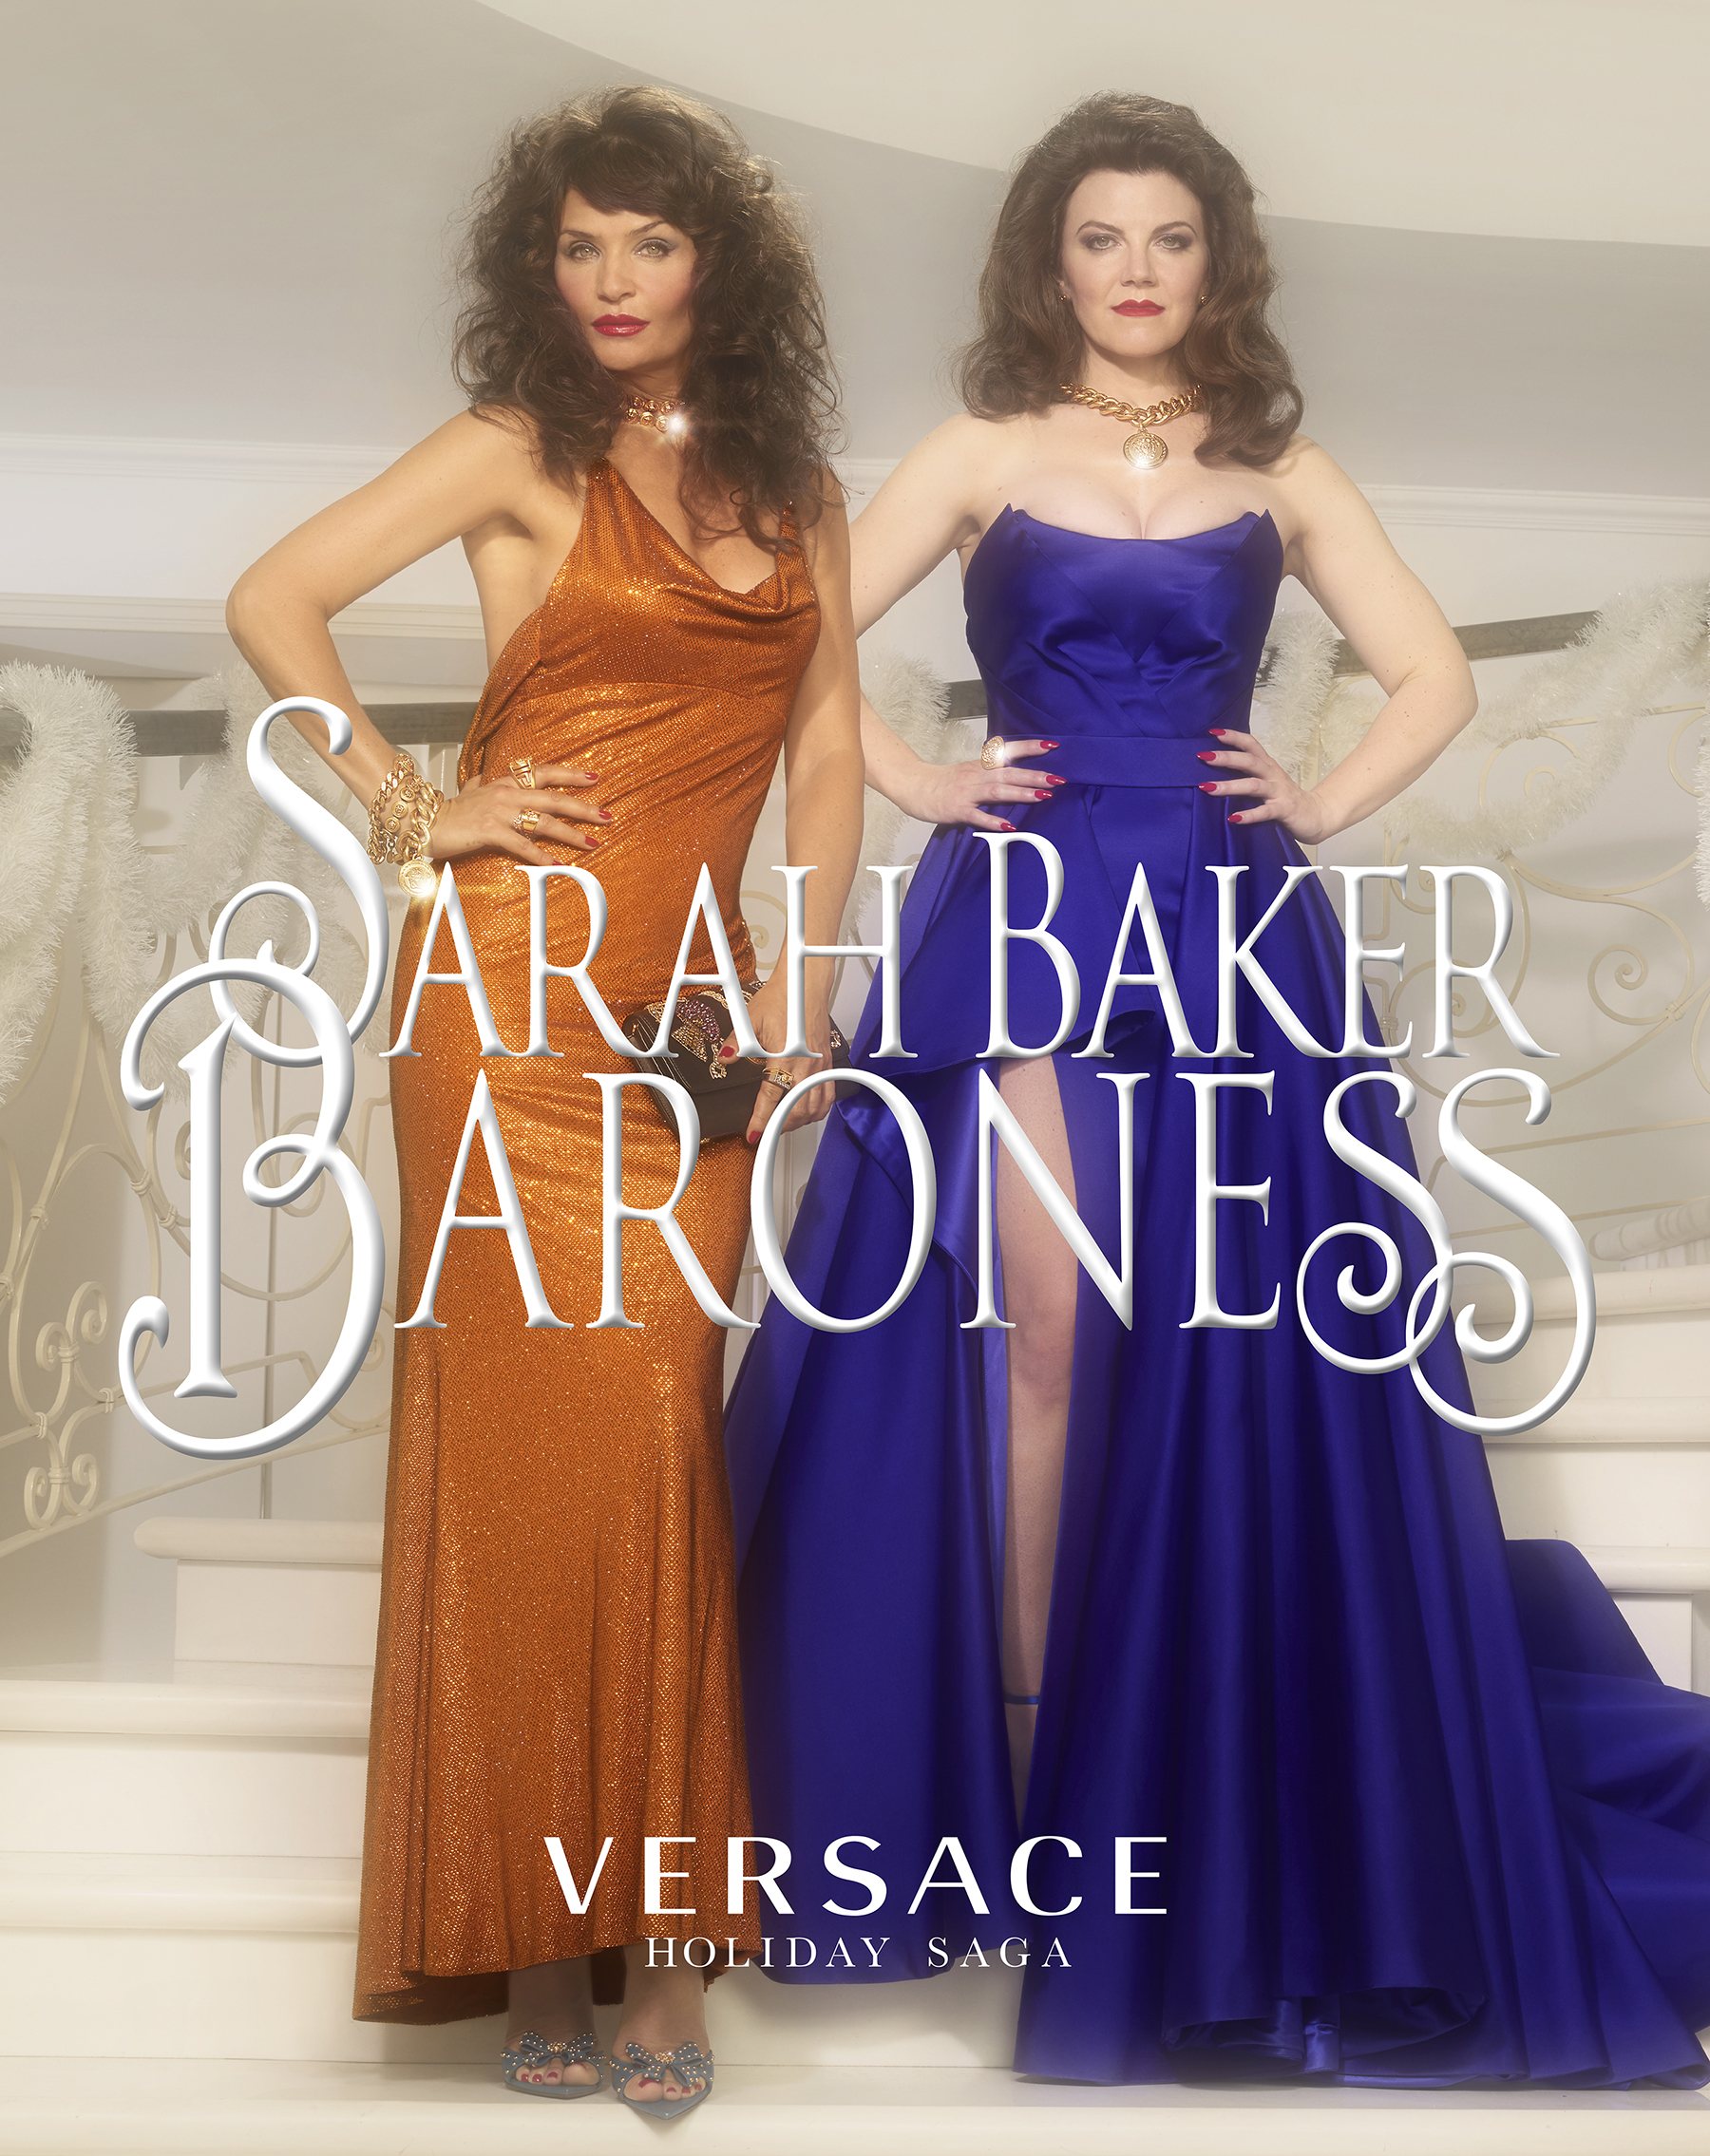 Versace 'Baroness by Sarah Baker' Holiday 2019 Ad Campaign